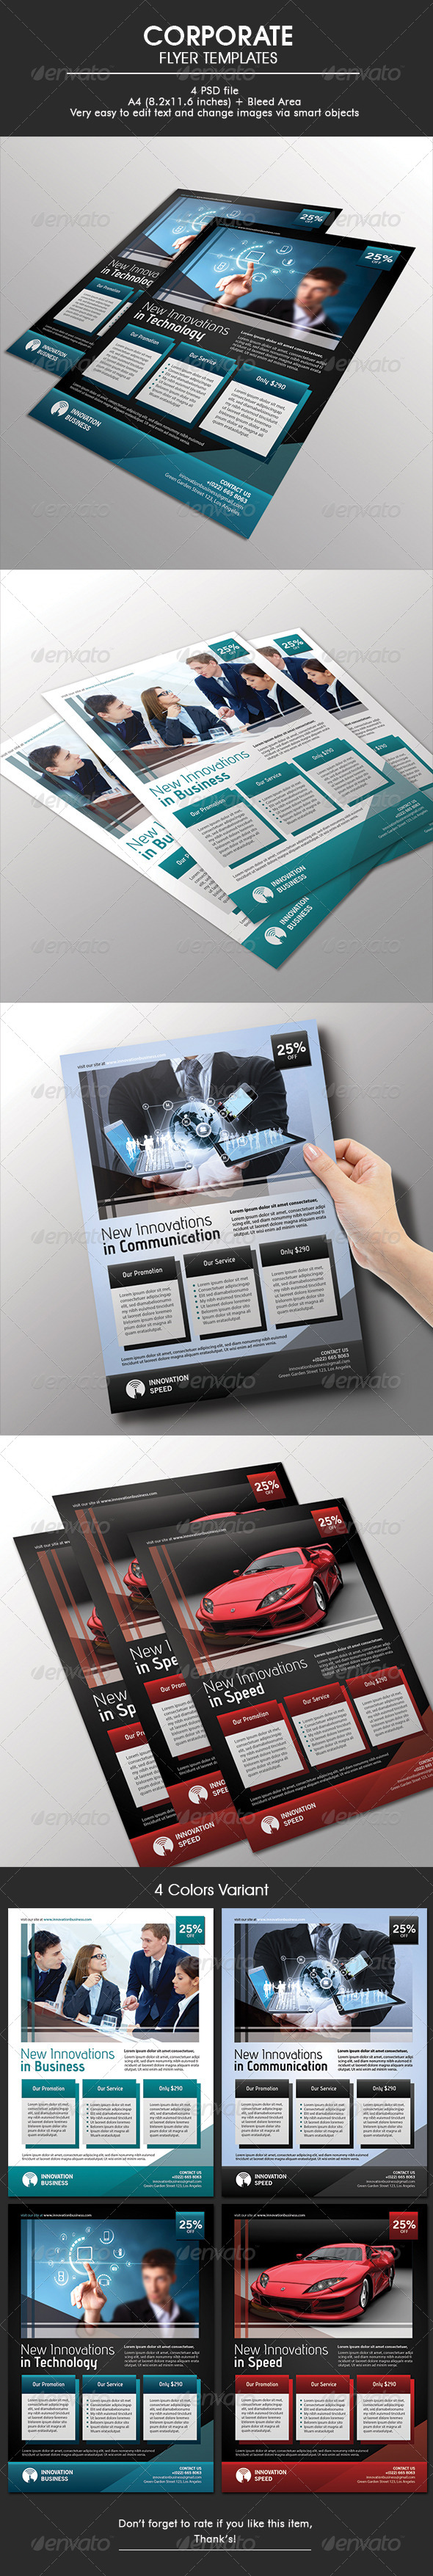 GraphicRiver Corporate Flyer Template 6650102